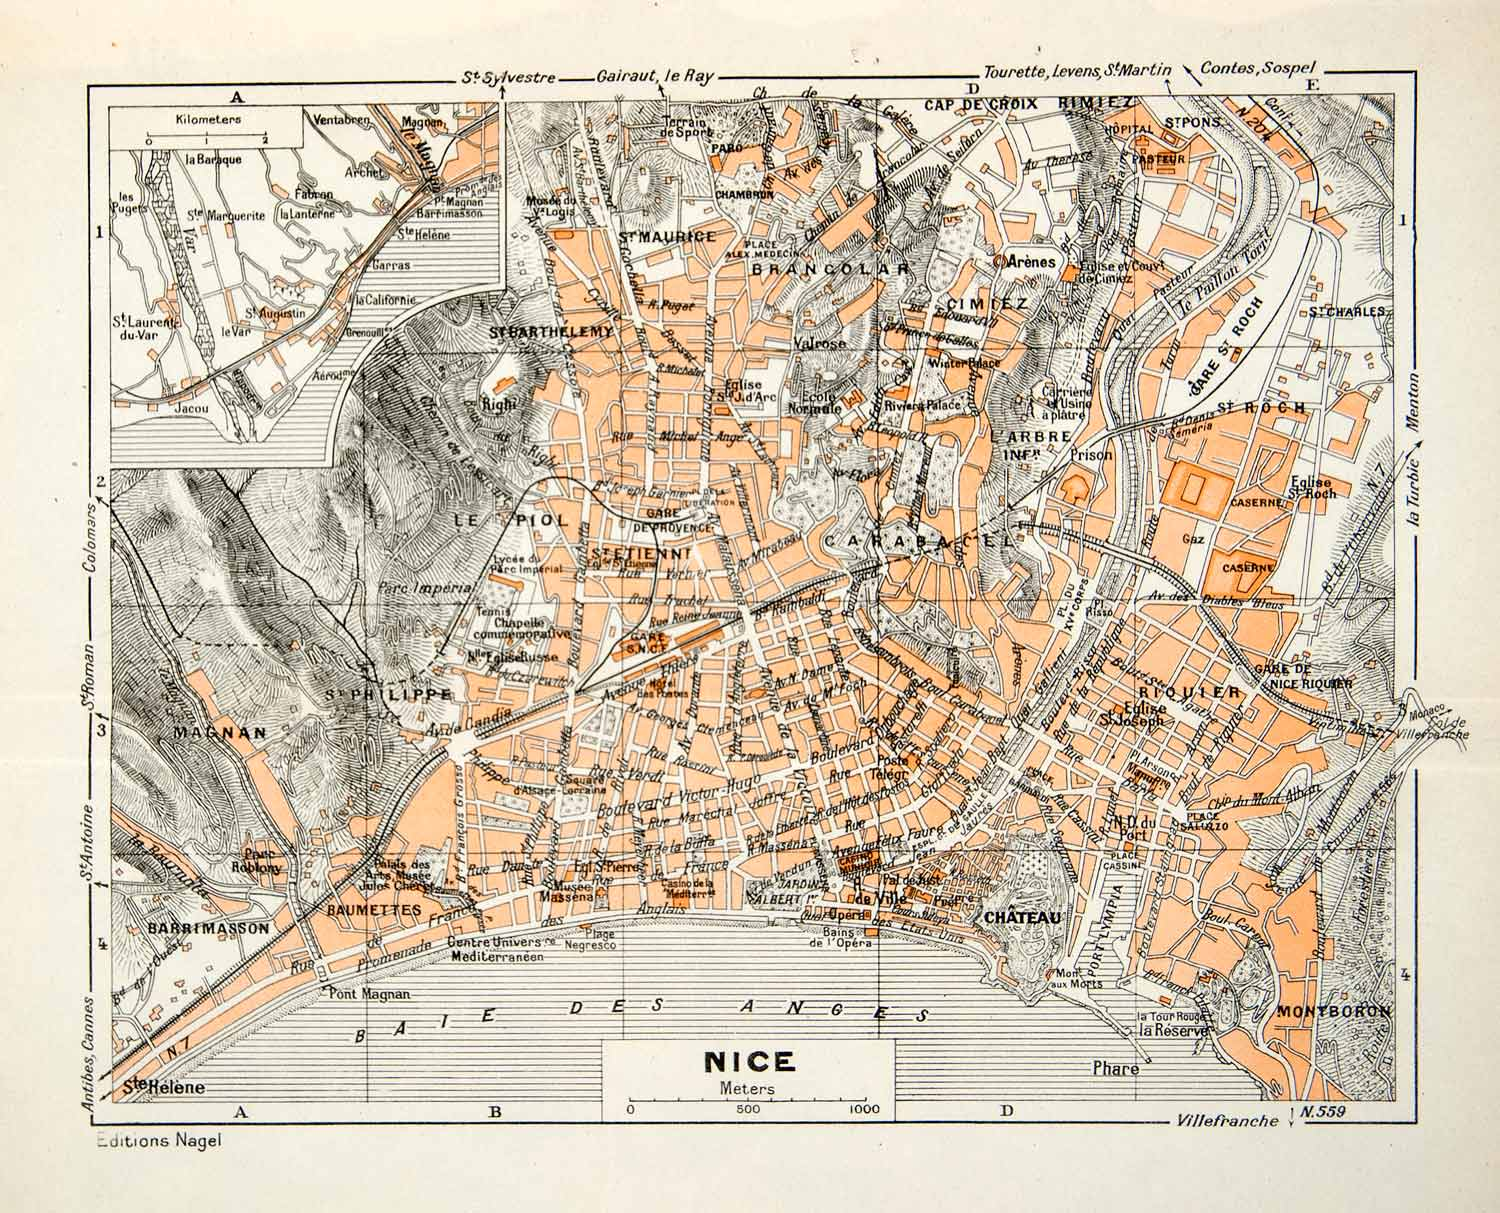 1949 Lithograph Vintage Street Map Nice France City Planning Civic – Streetmap France